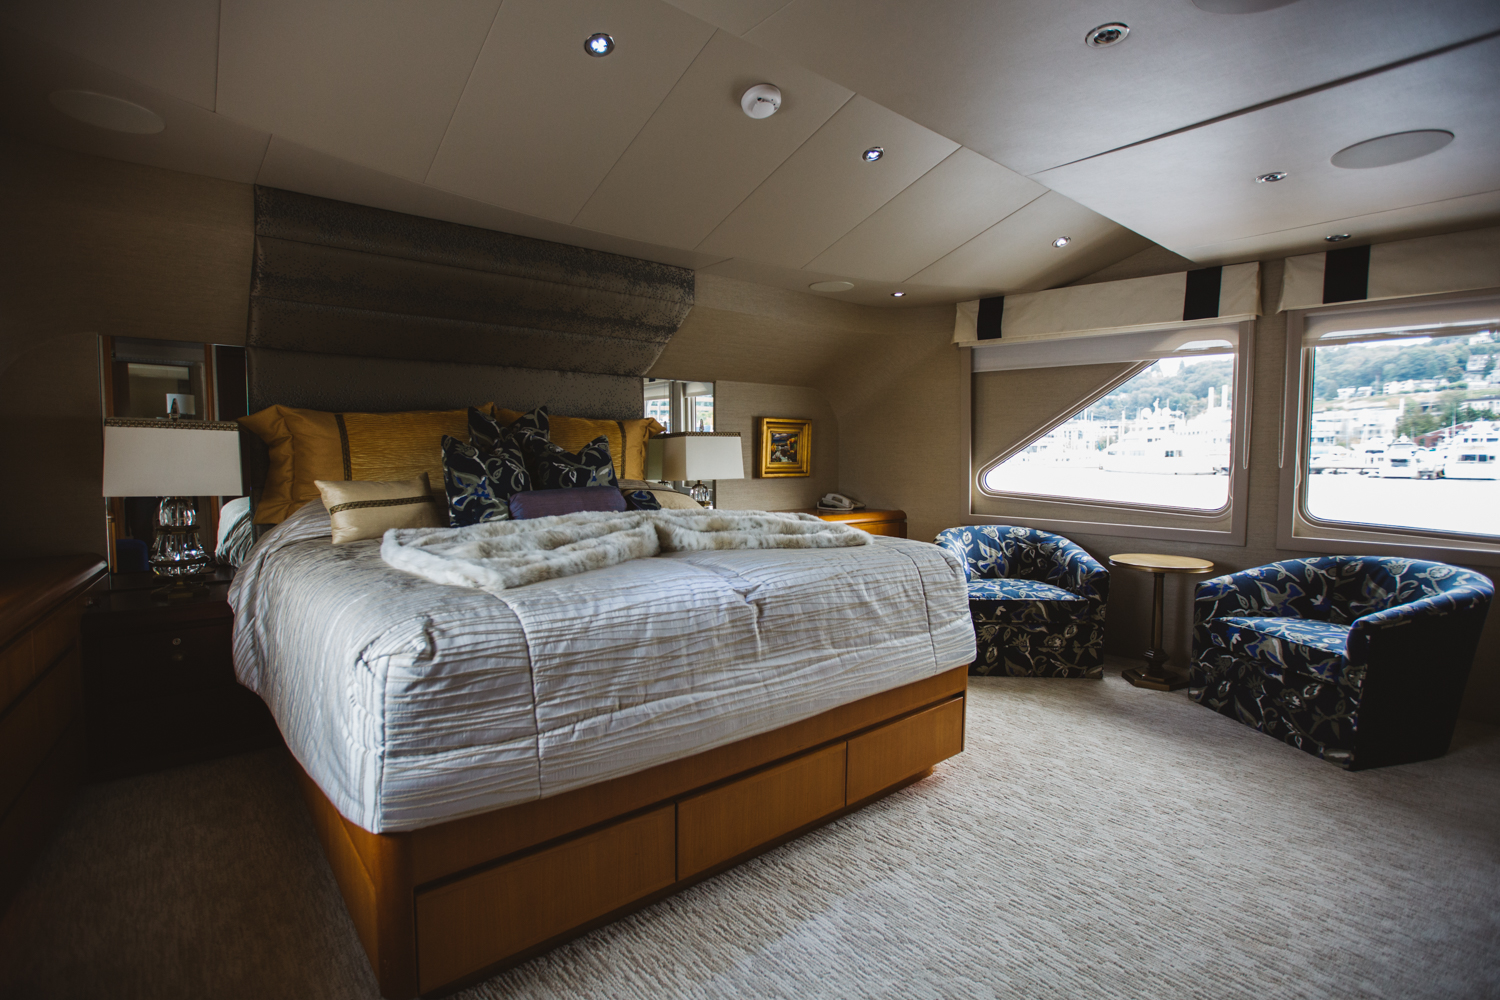 With a fleet that encompasses over 225 vessels, the Boats Afloat Show located at Lake Union highlights some of the finest boats to grace the open waters. The Afterglow is most definitely one of those boats, boasting an impressive 4 staterooms, each with their own ensuite bath, allowing it to comfortably accommodate 8 guests. In addition, her expansive 4,000 mile range at a 12 knot pace allows you the luxury of sustained travel. (Image: Ryan McBoyle / Seattle Refined)